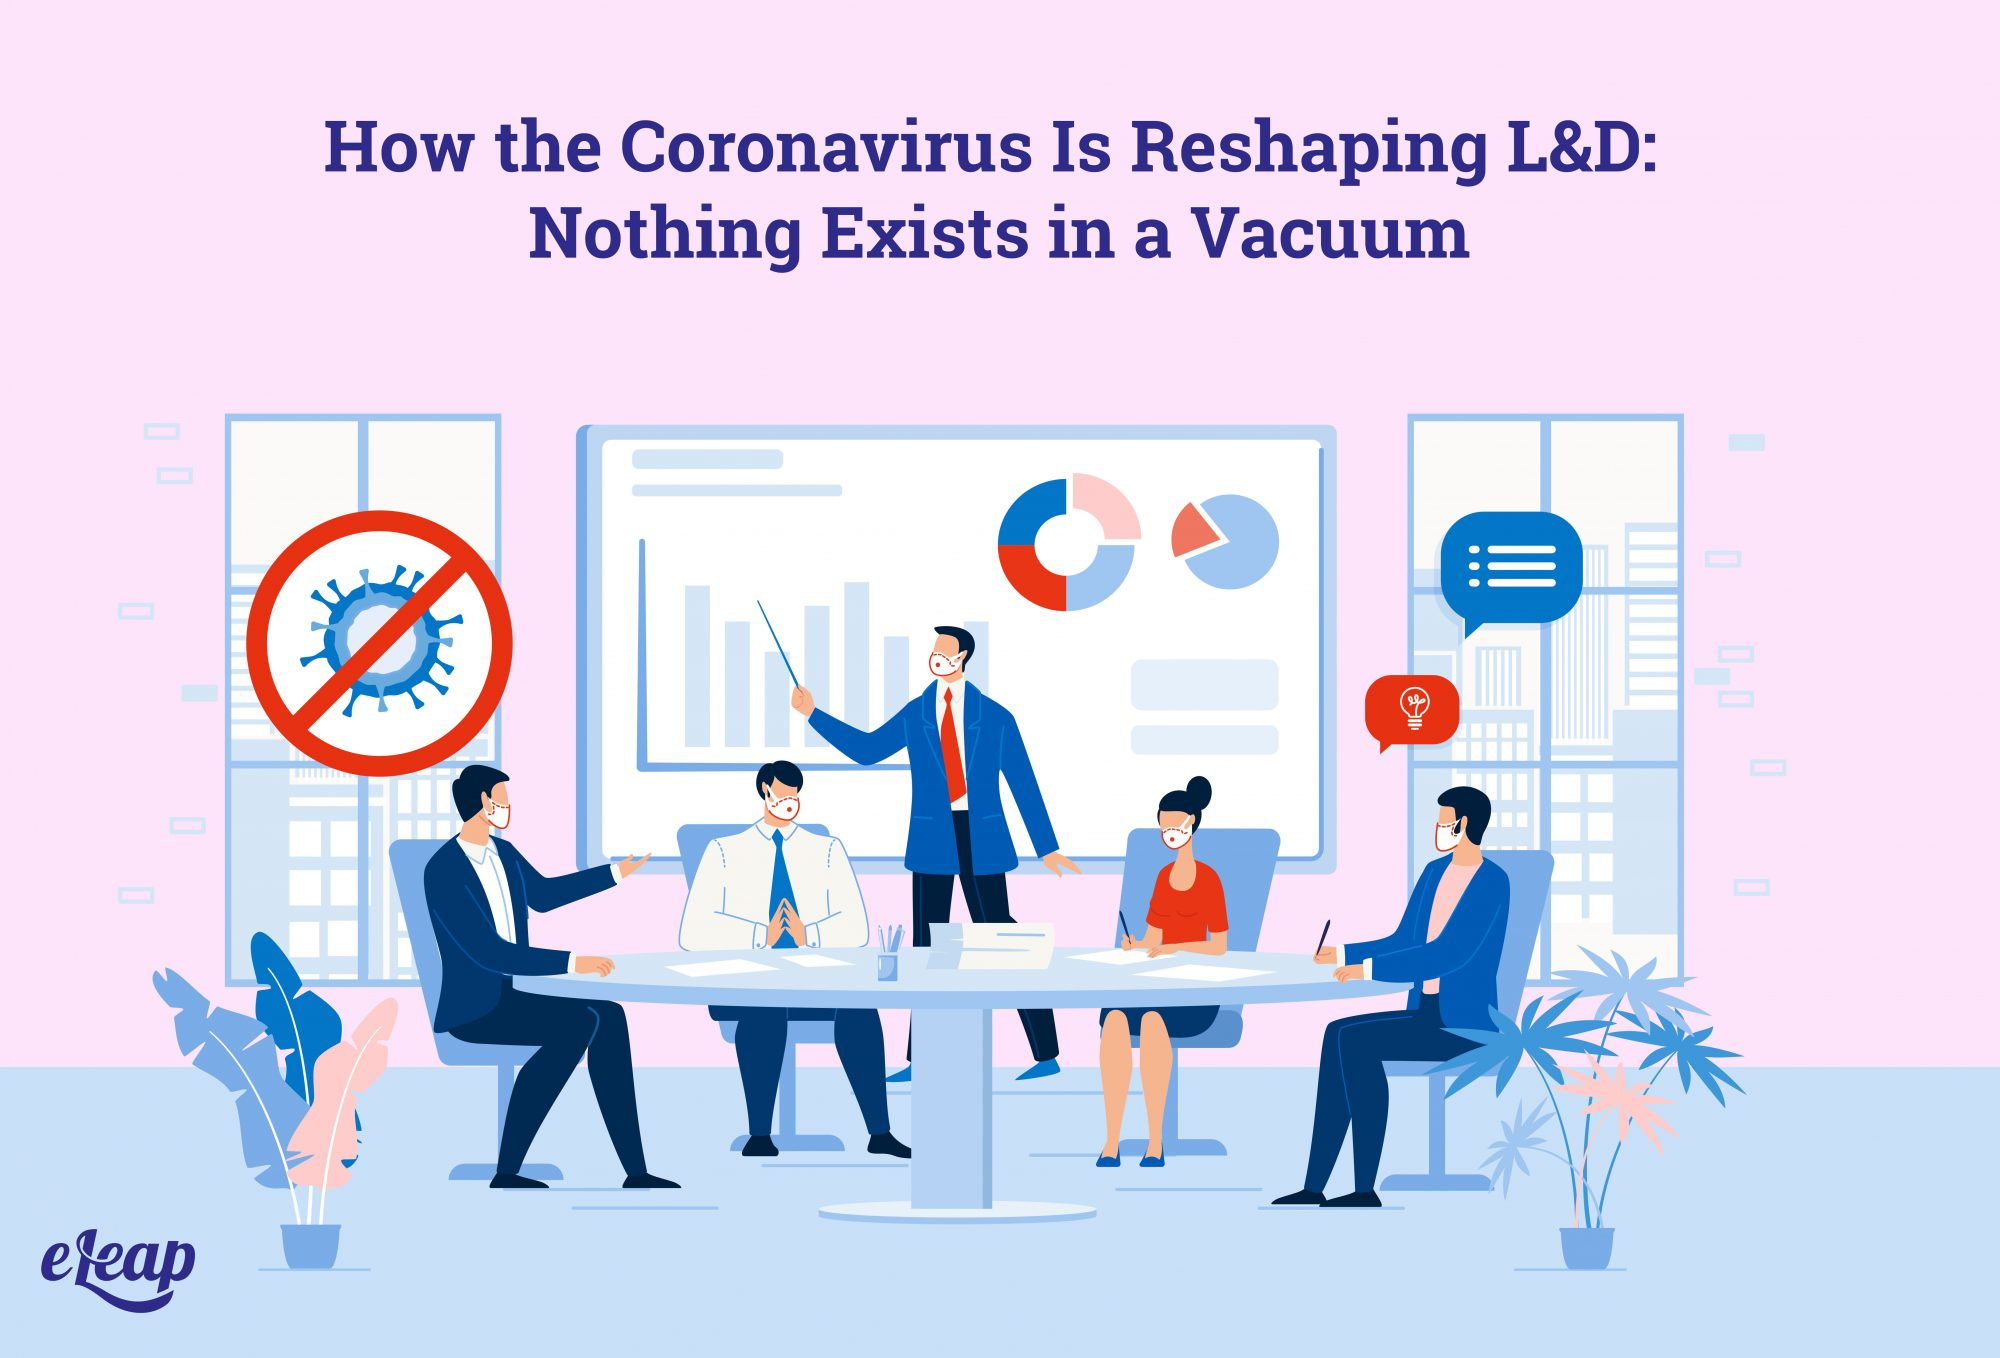 How the Coronavirus Is Reshaping L&D: Nothing Exists in a Vacuum